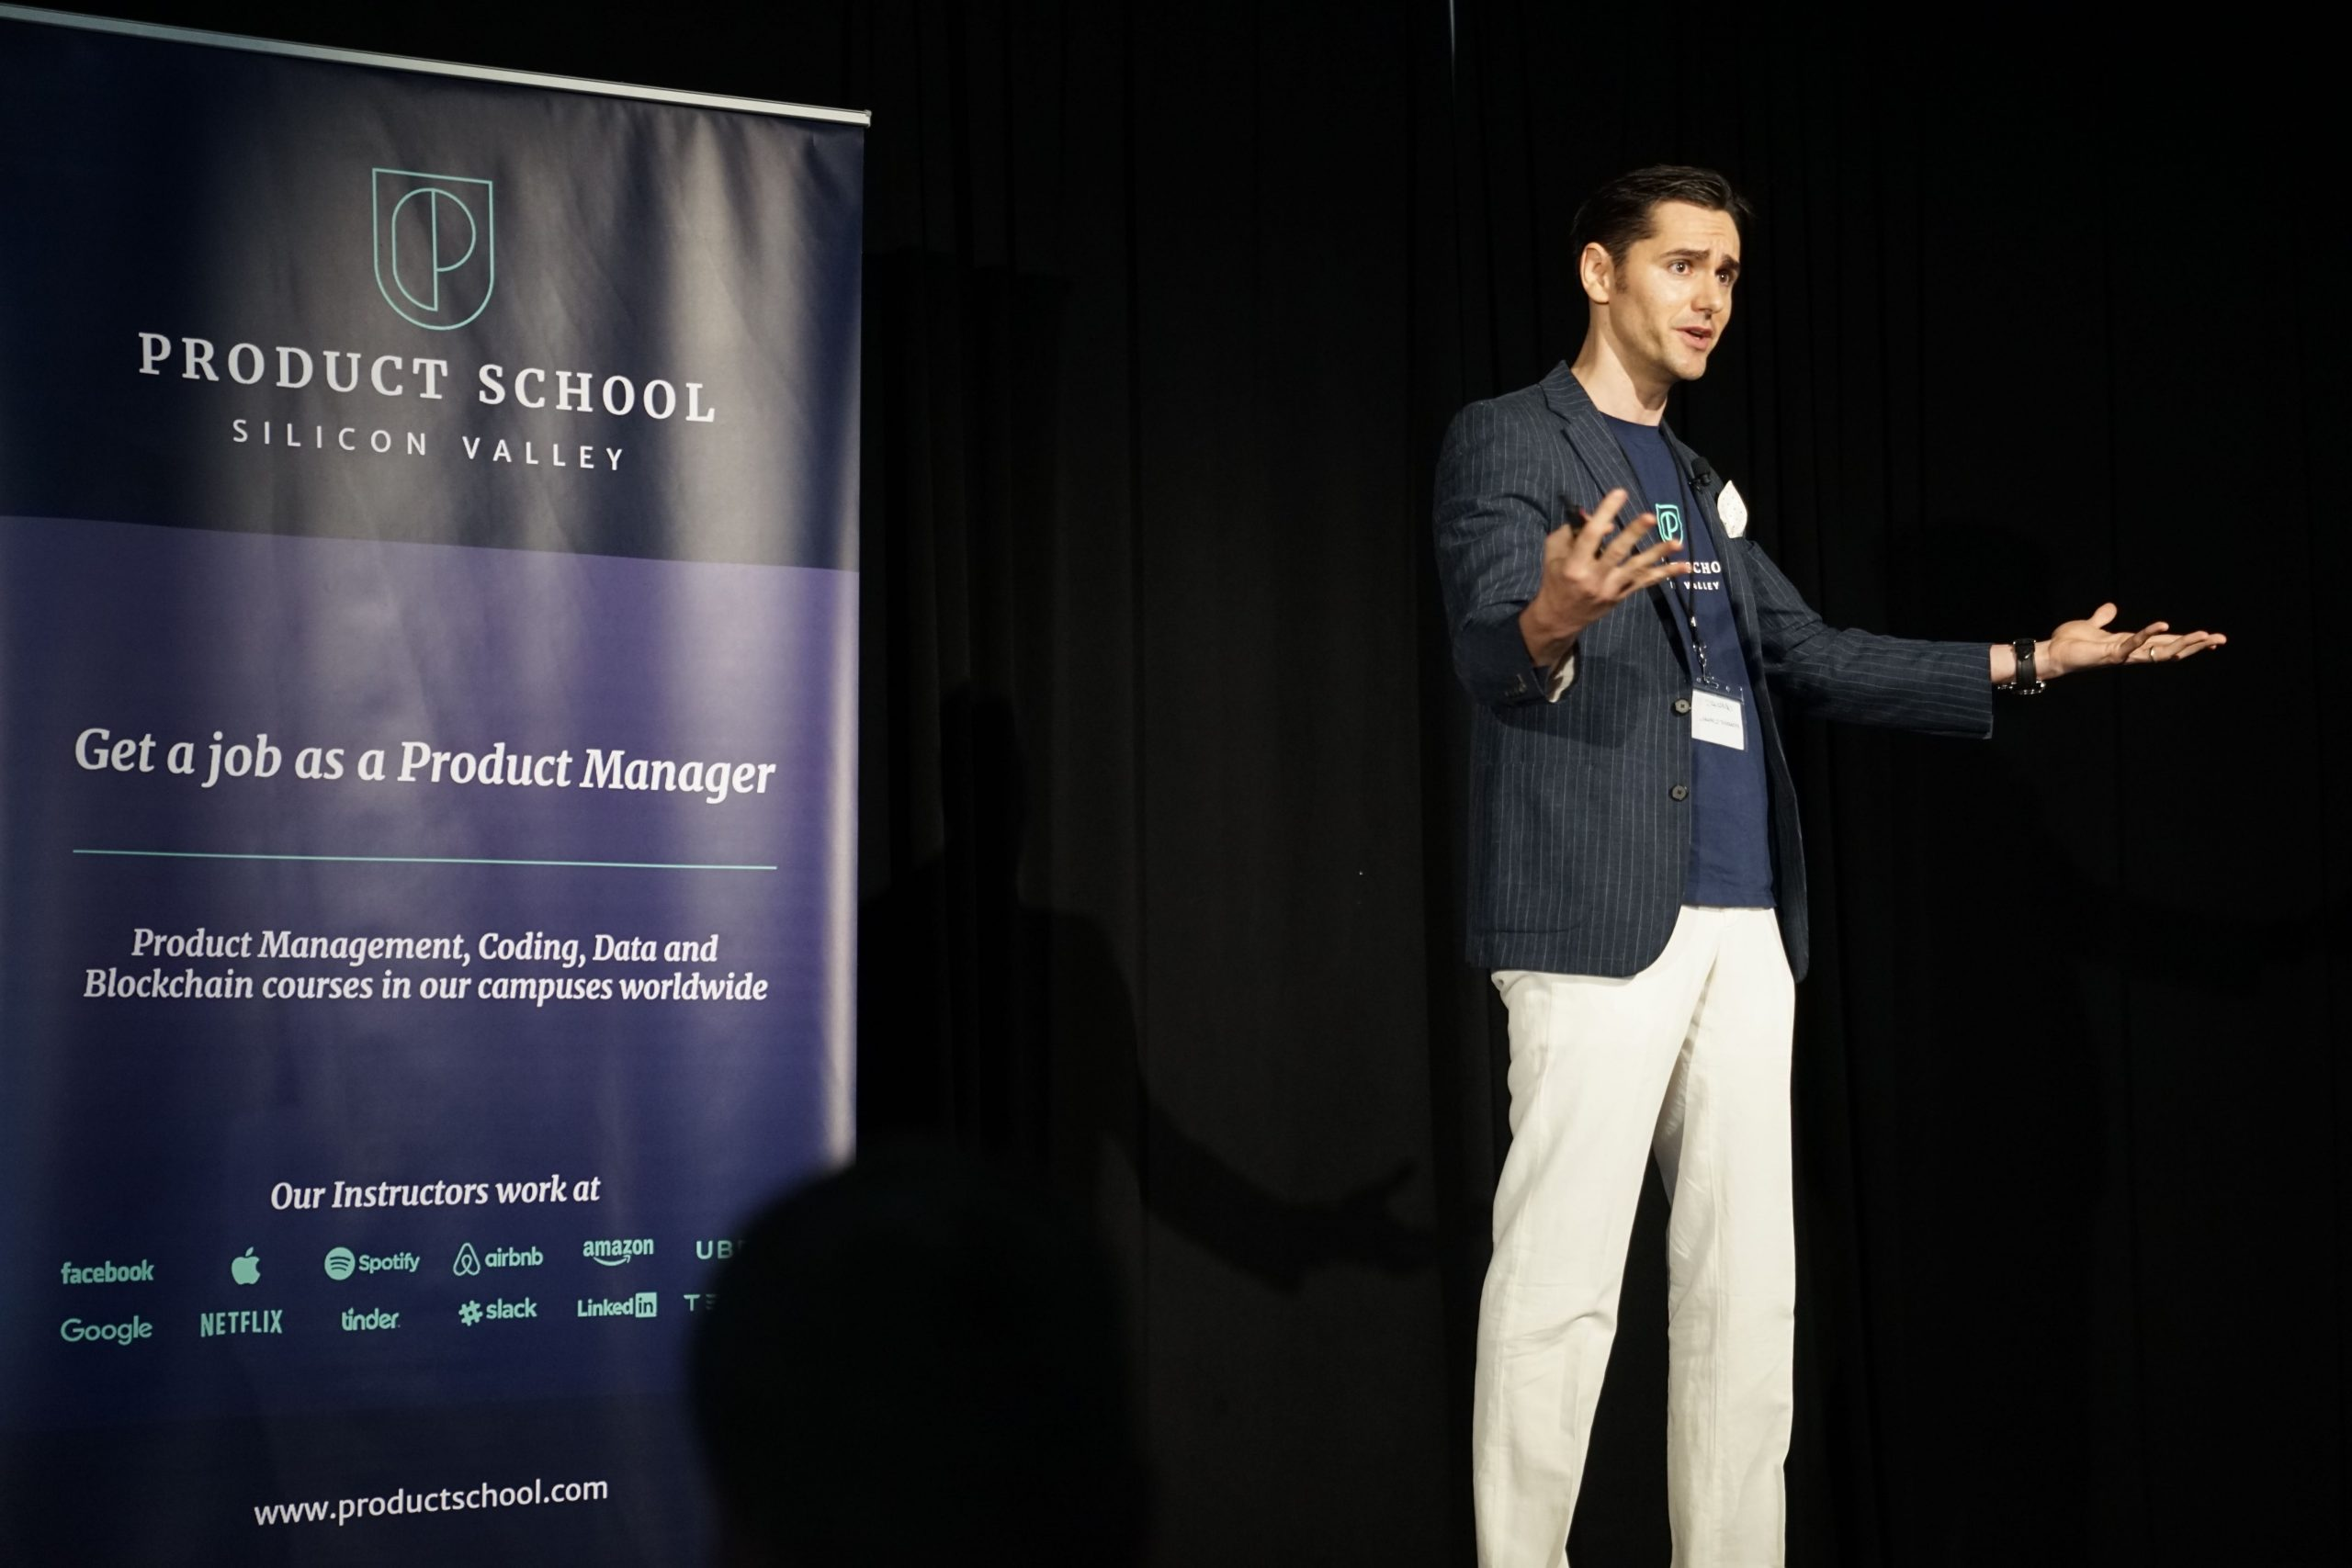 Man giving a talk at an event or conference